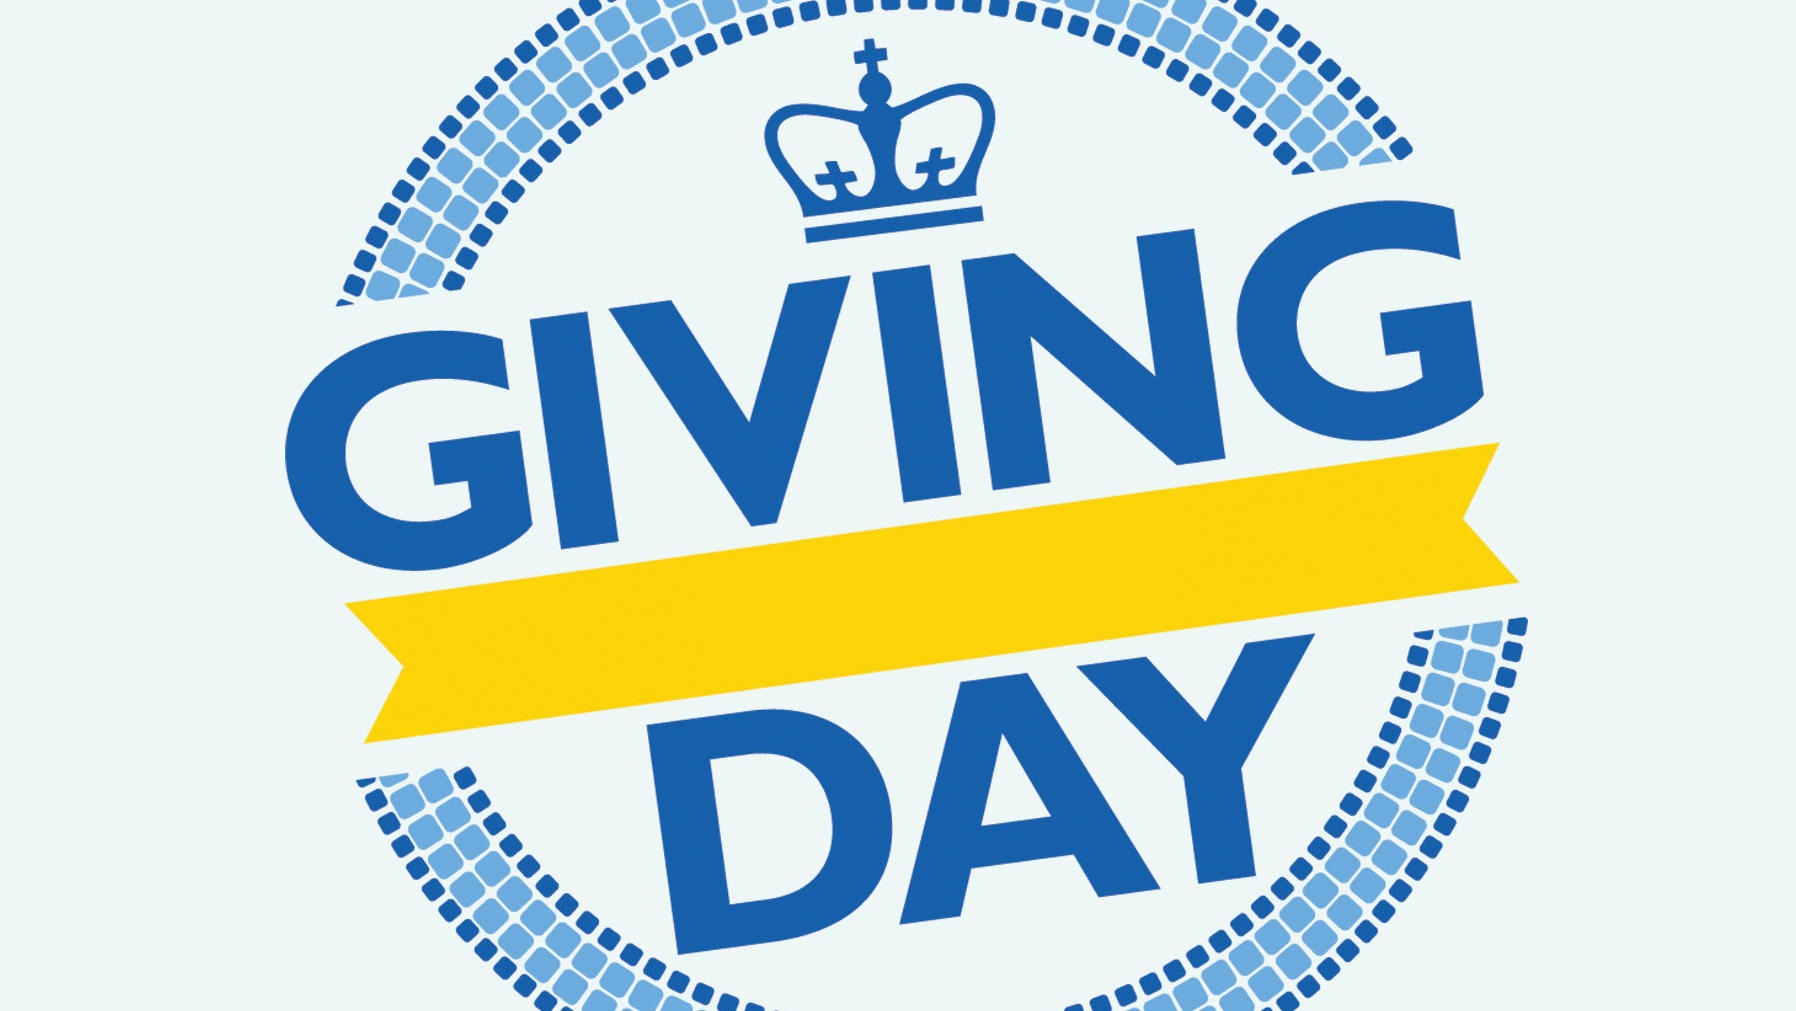 Columbia Giving Day logo